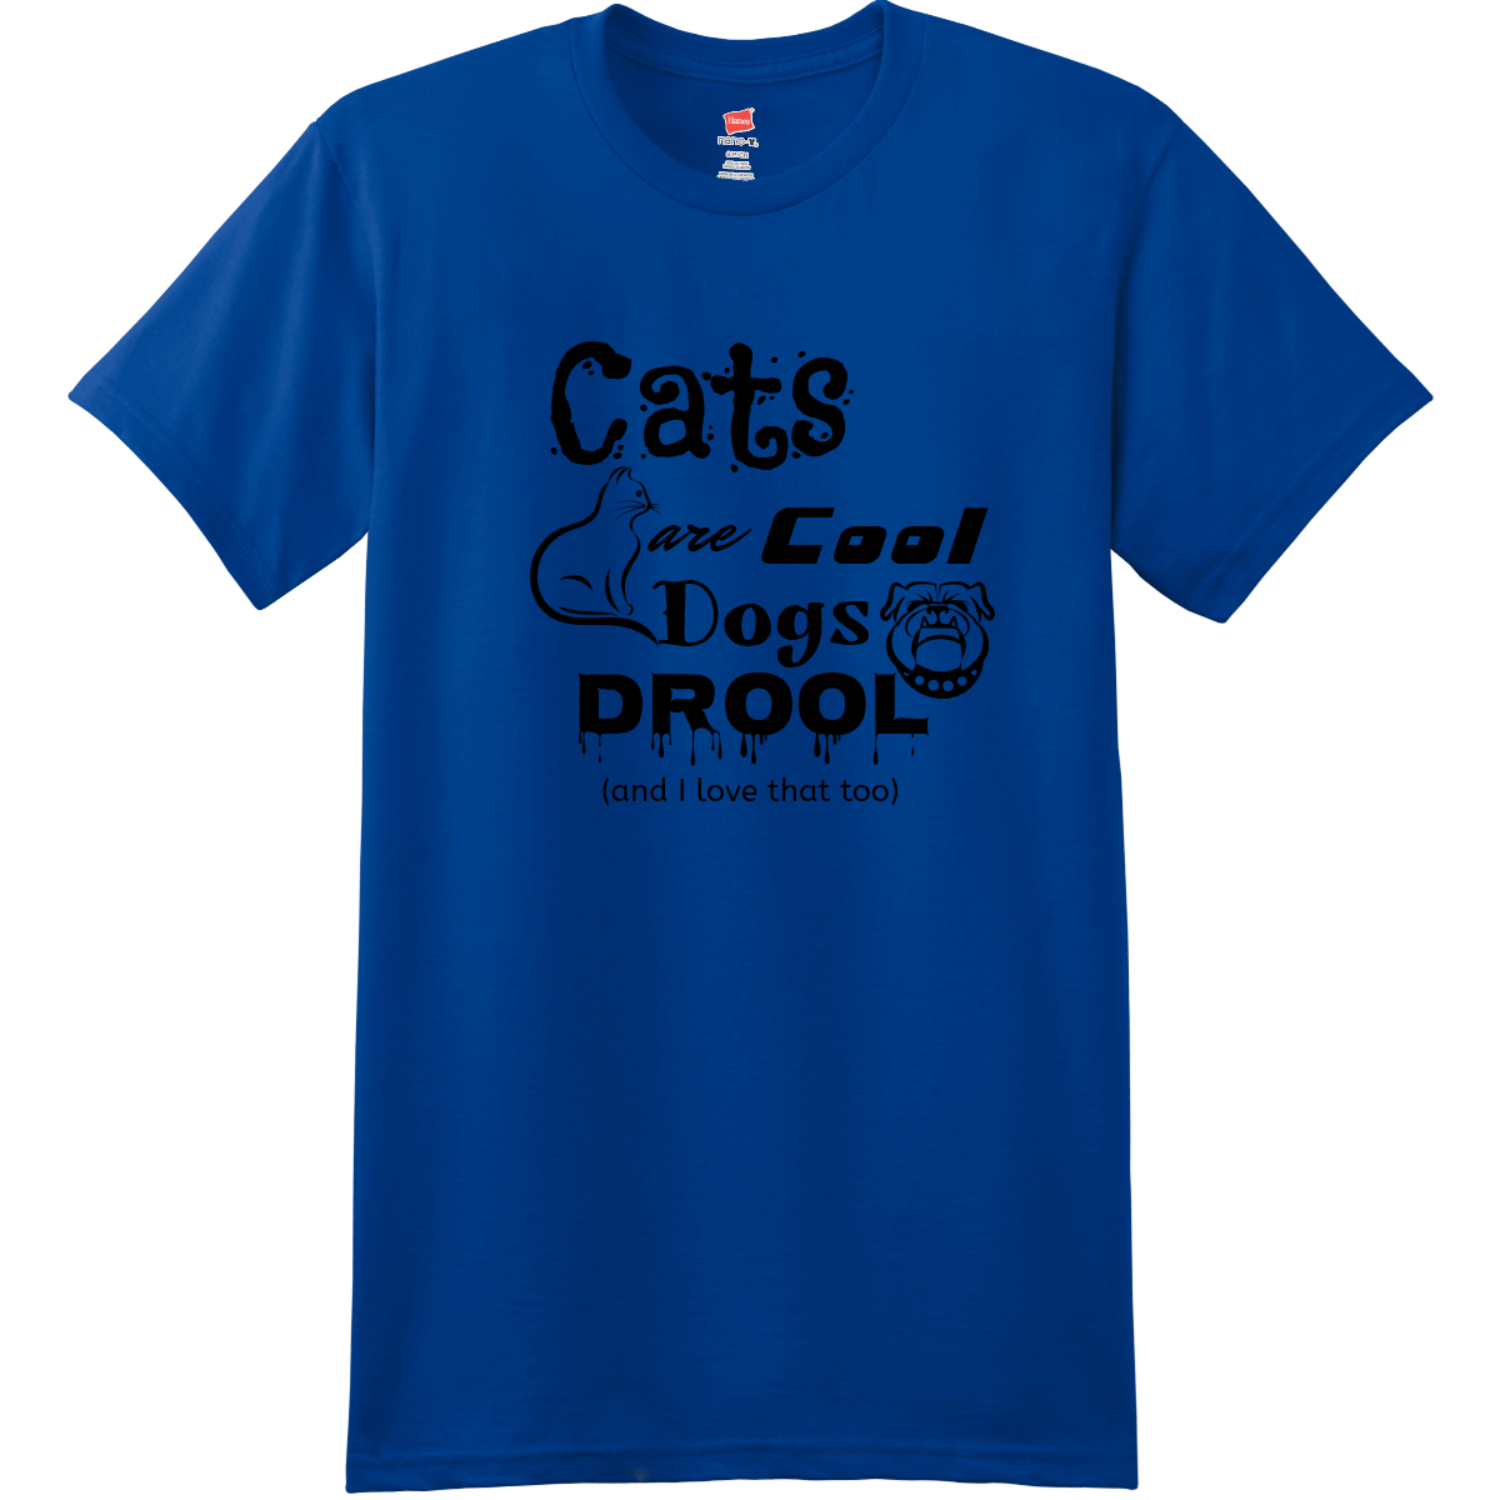 Cats Are Cool Dogs Drool T Shirt Deep Royal Hanes Nano 4980 Ringspun Cotton T Shirt